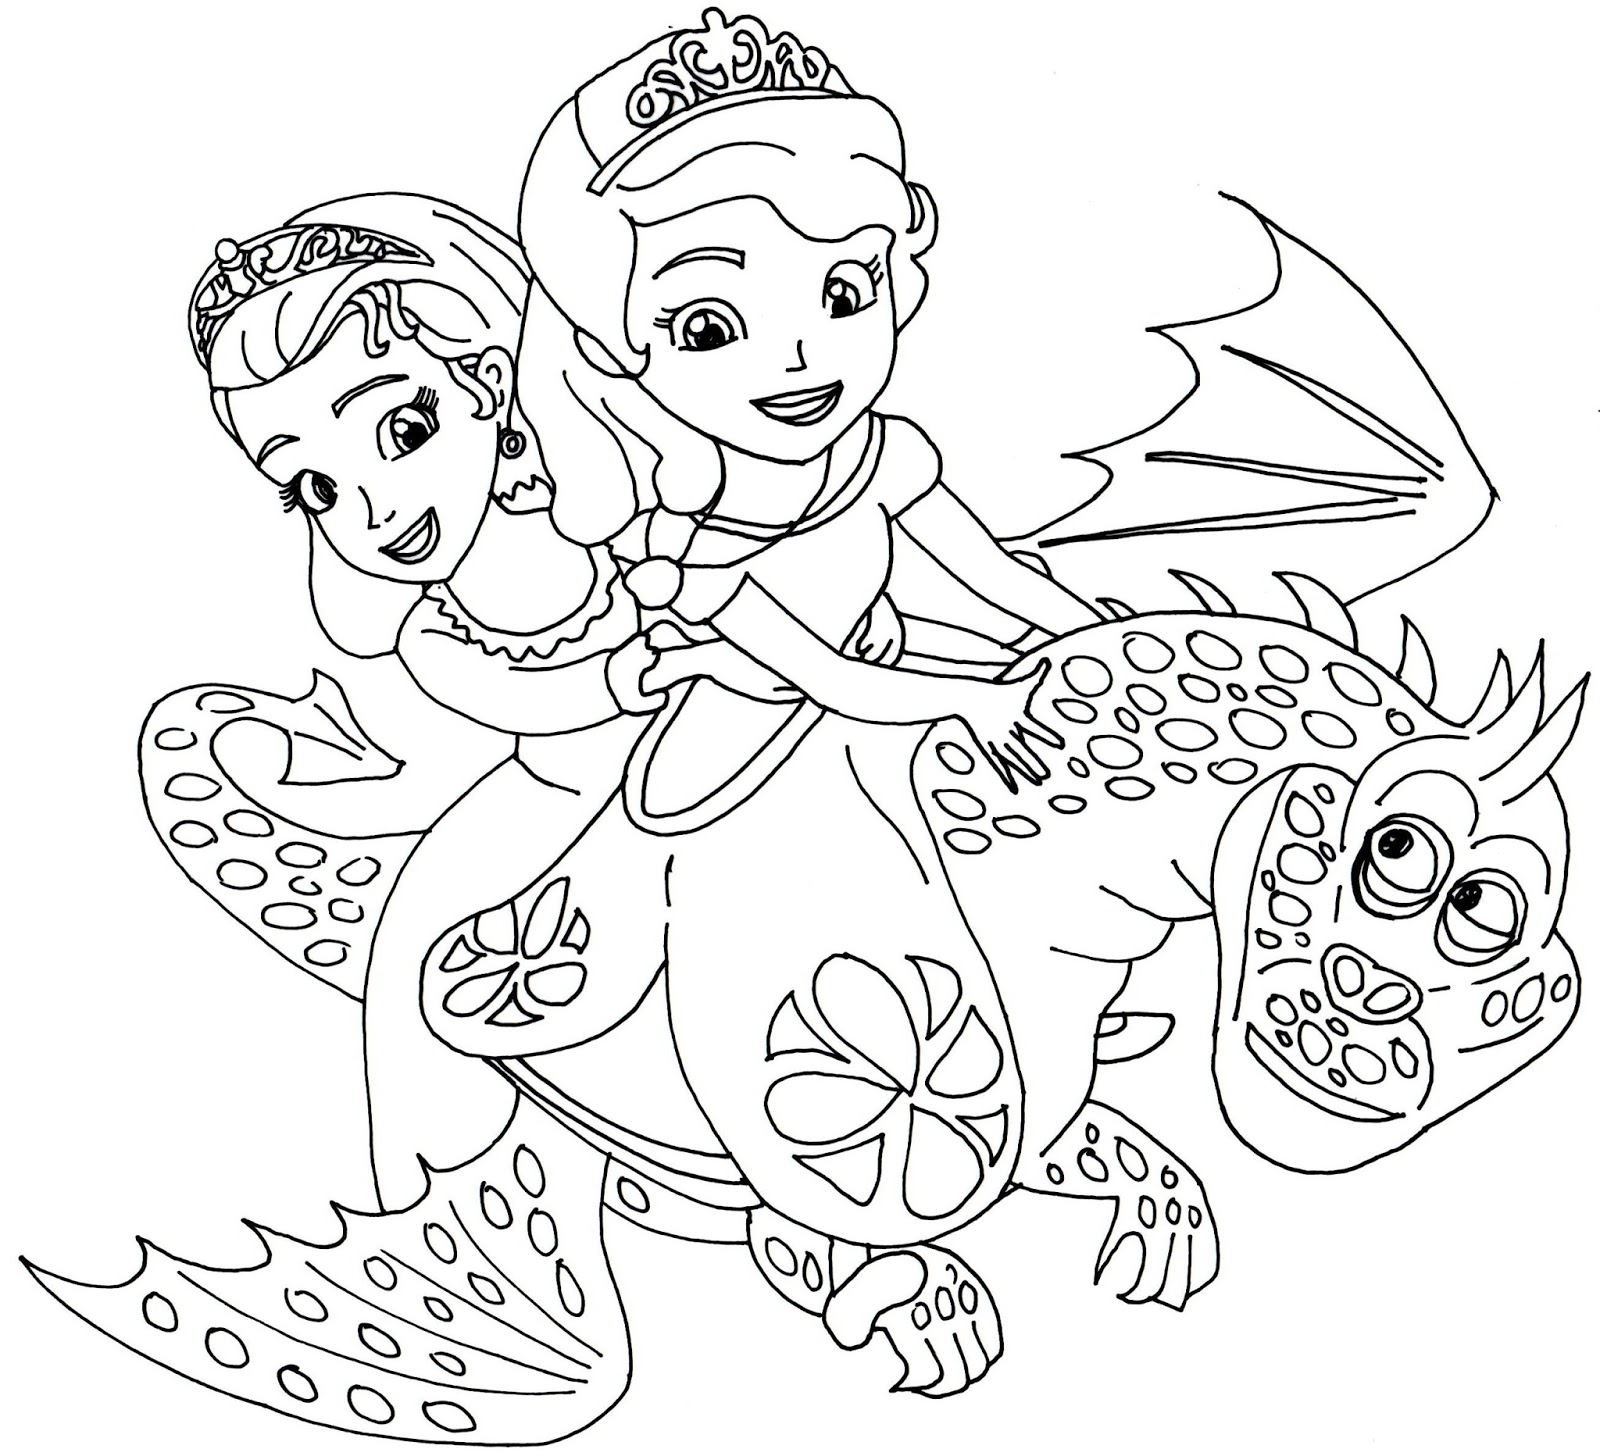 sofia the first coloring pages dragons of enchancia sofia the